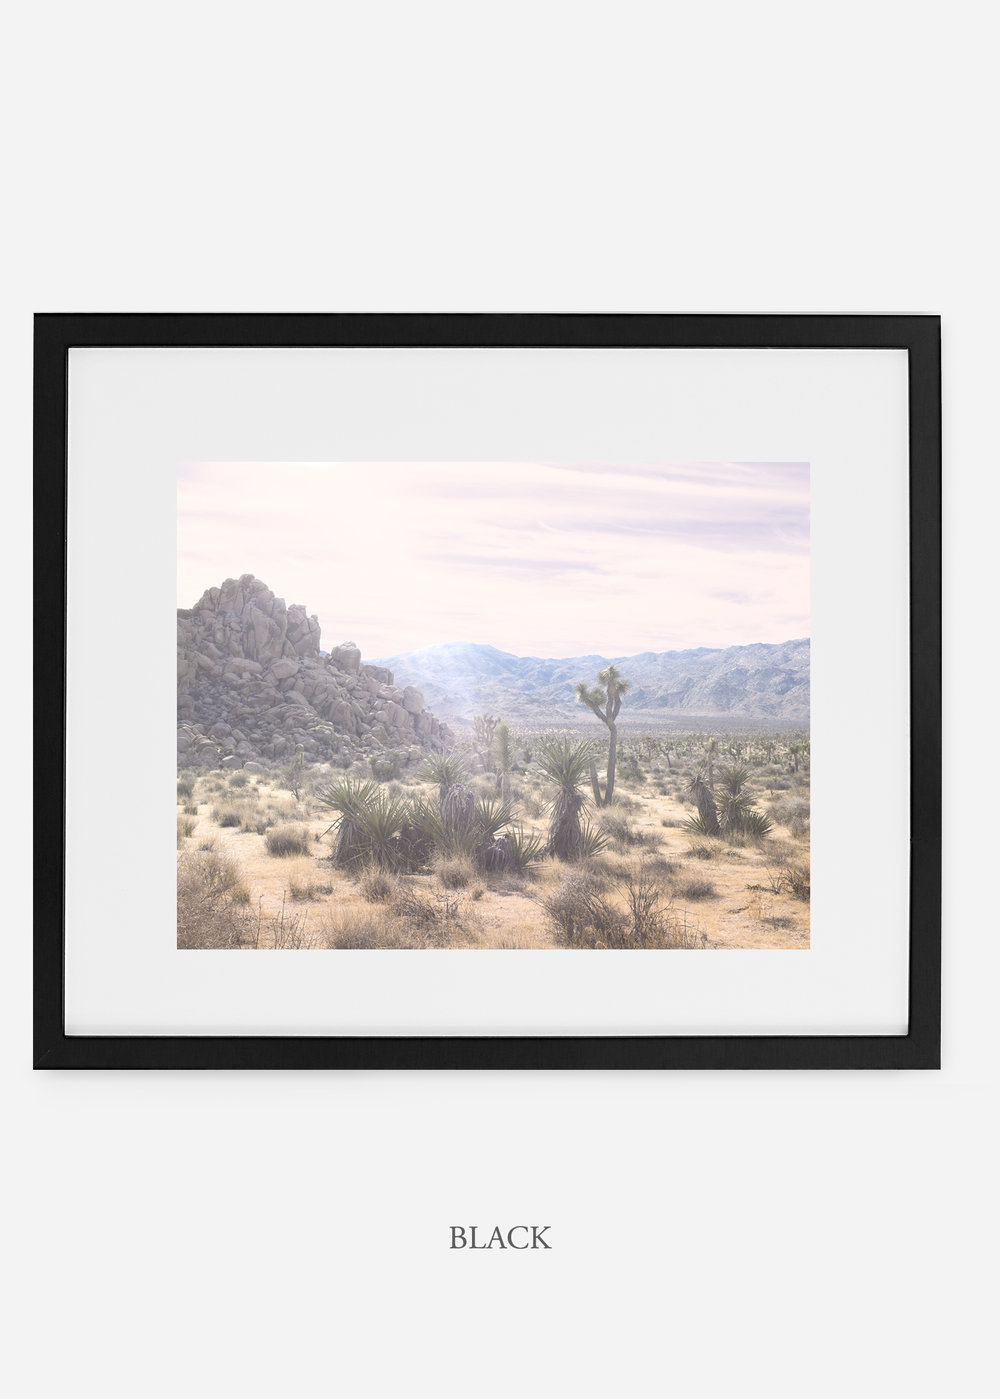 WilderCalifornia_blackframe_JoshuaTree_No.9_interiordesign_prints_art.jpg